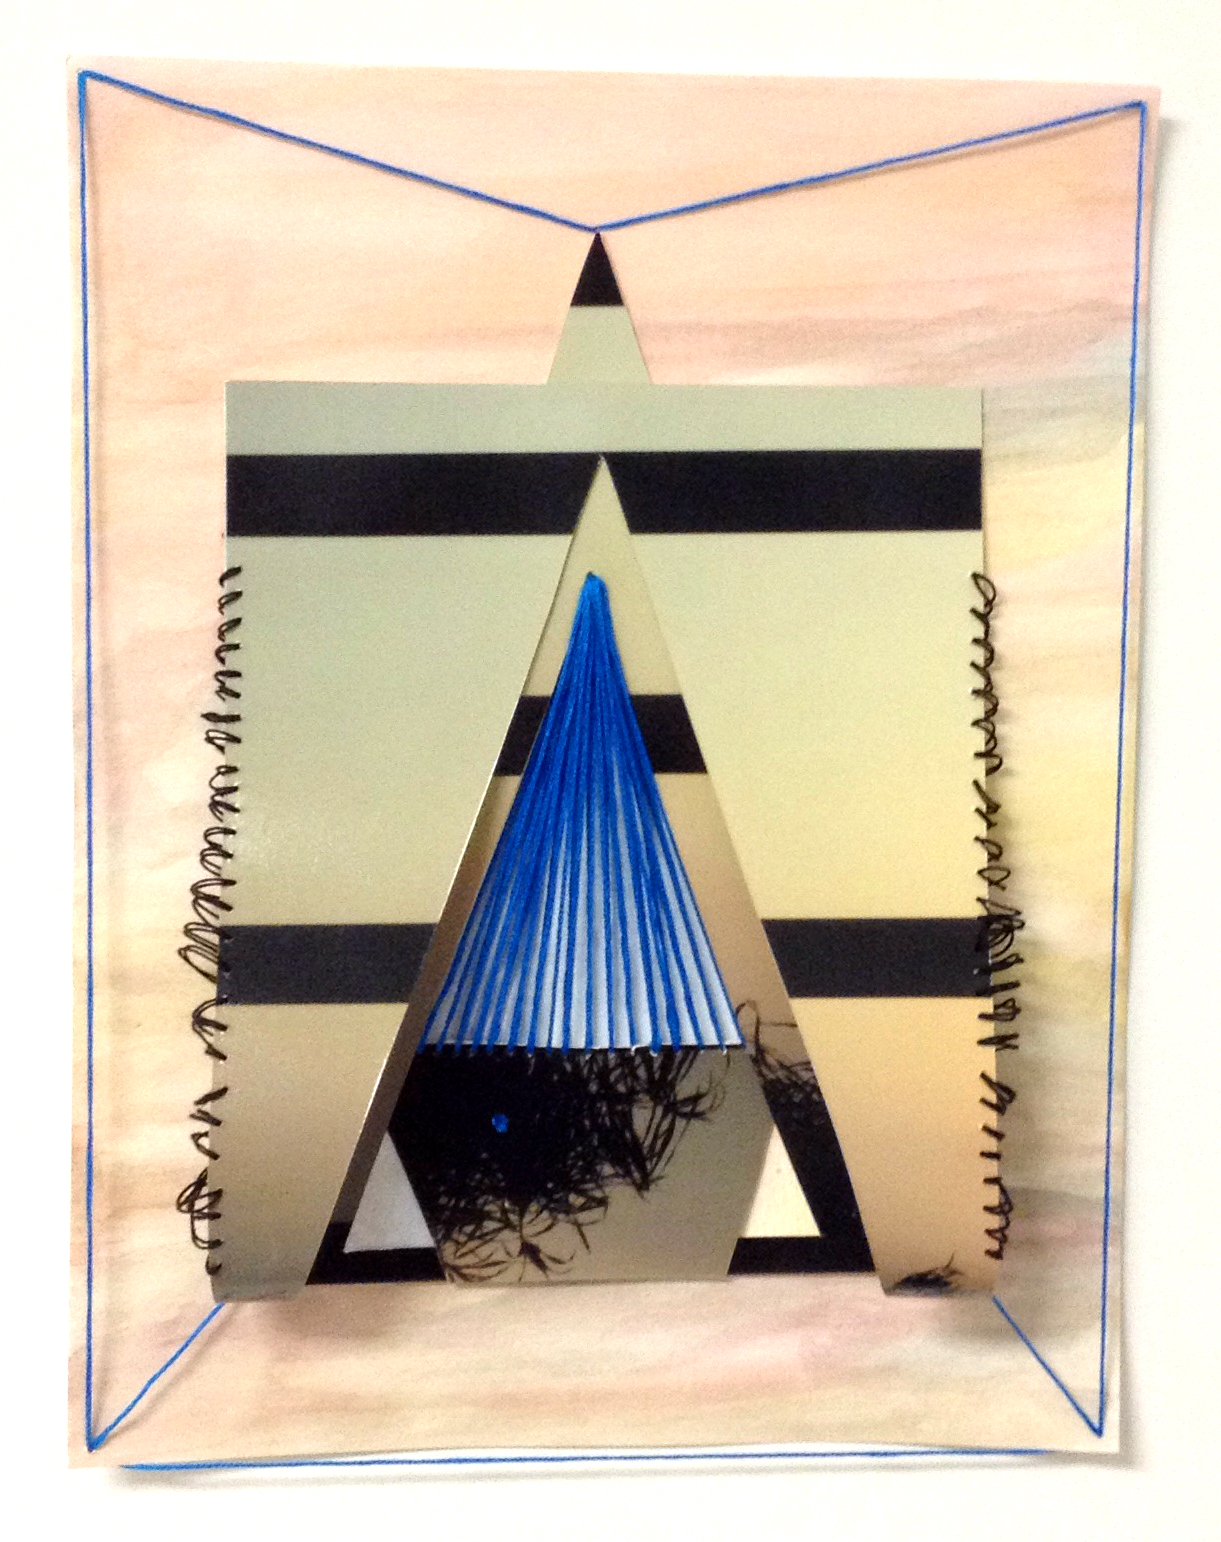 paper 18 (under which reality?), 2014  gouache, photograph, threadon paper  11 x 8.5 inches